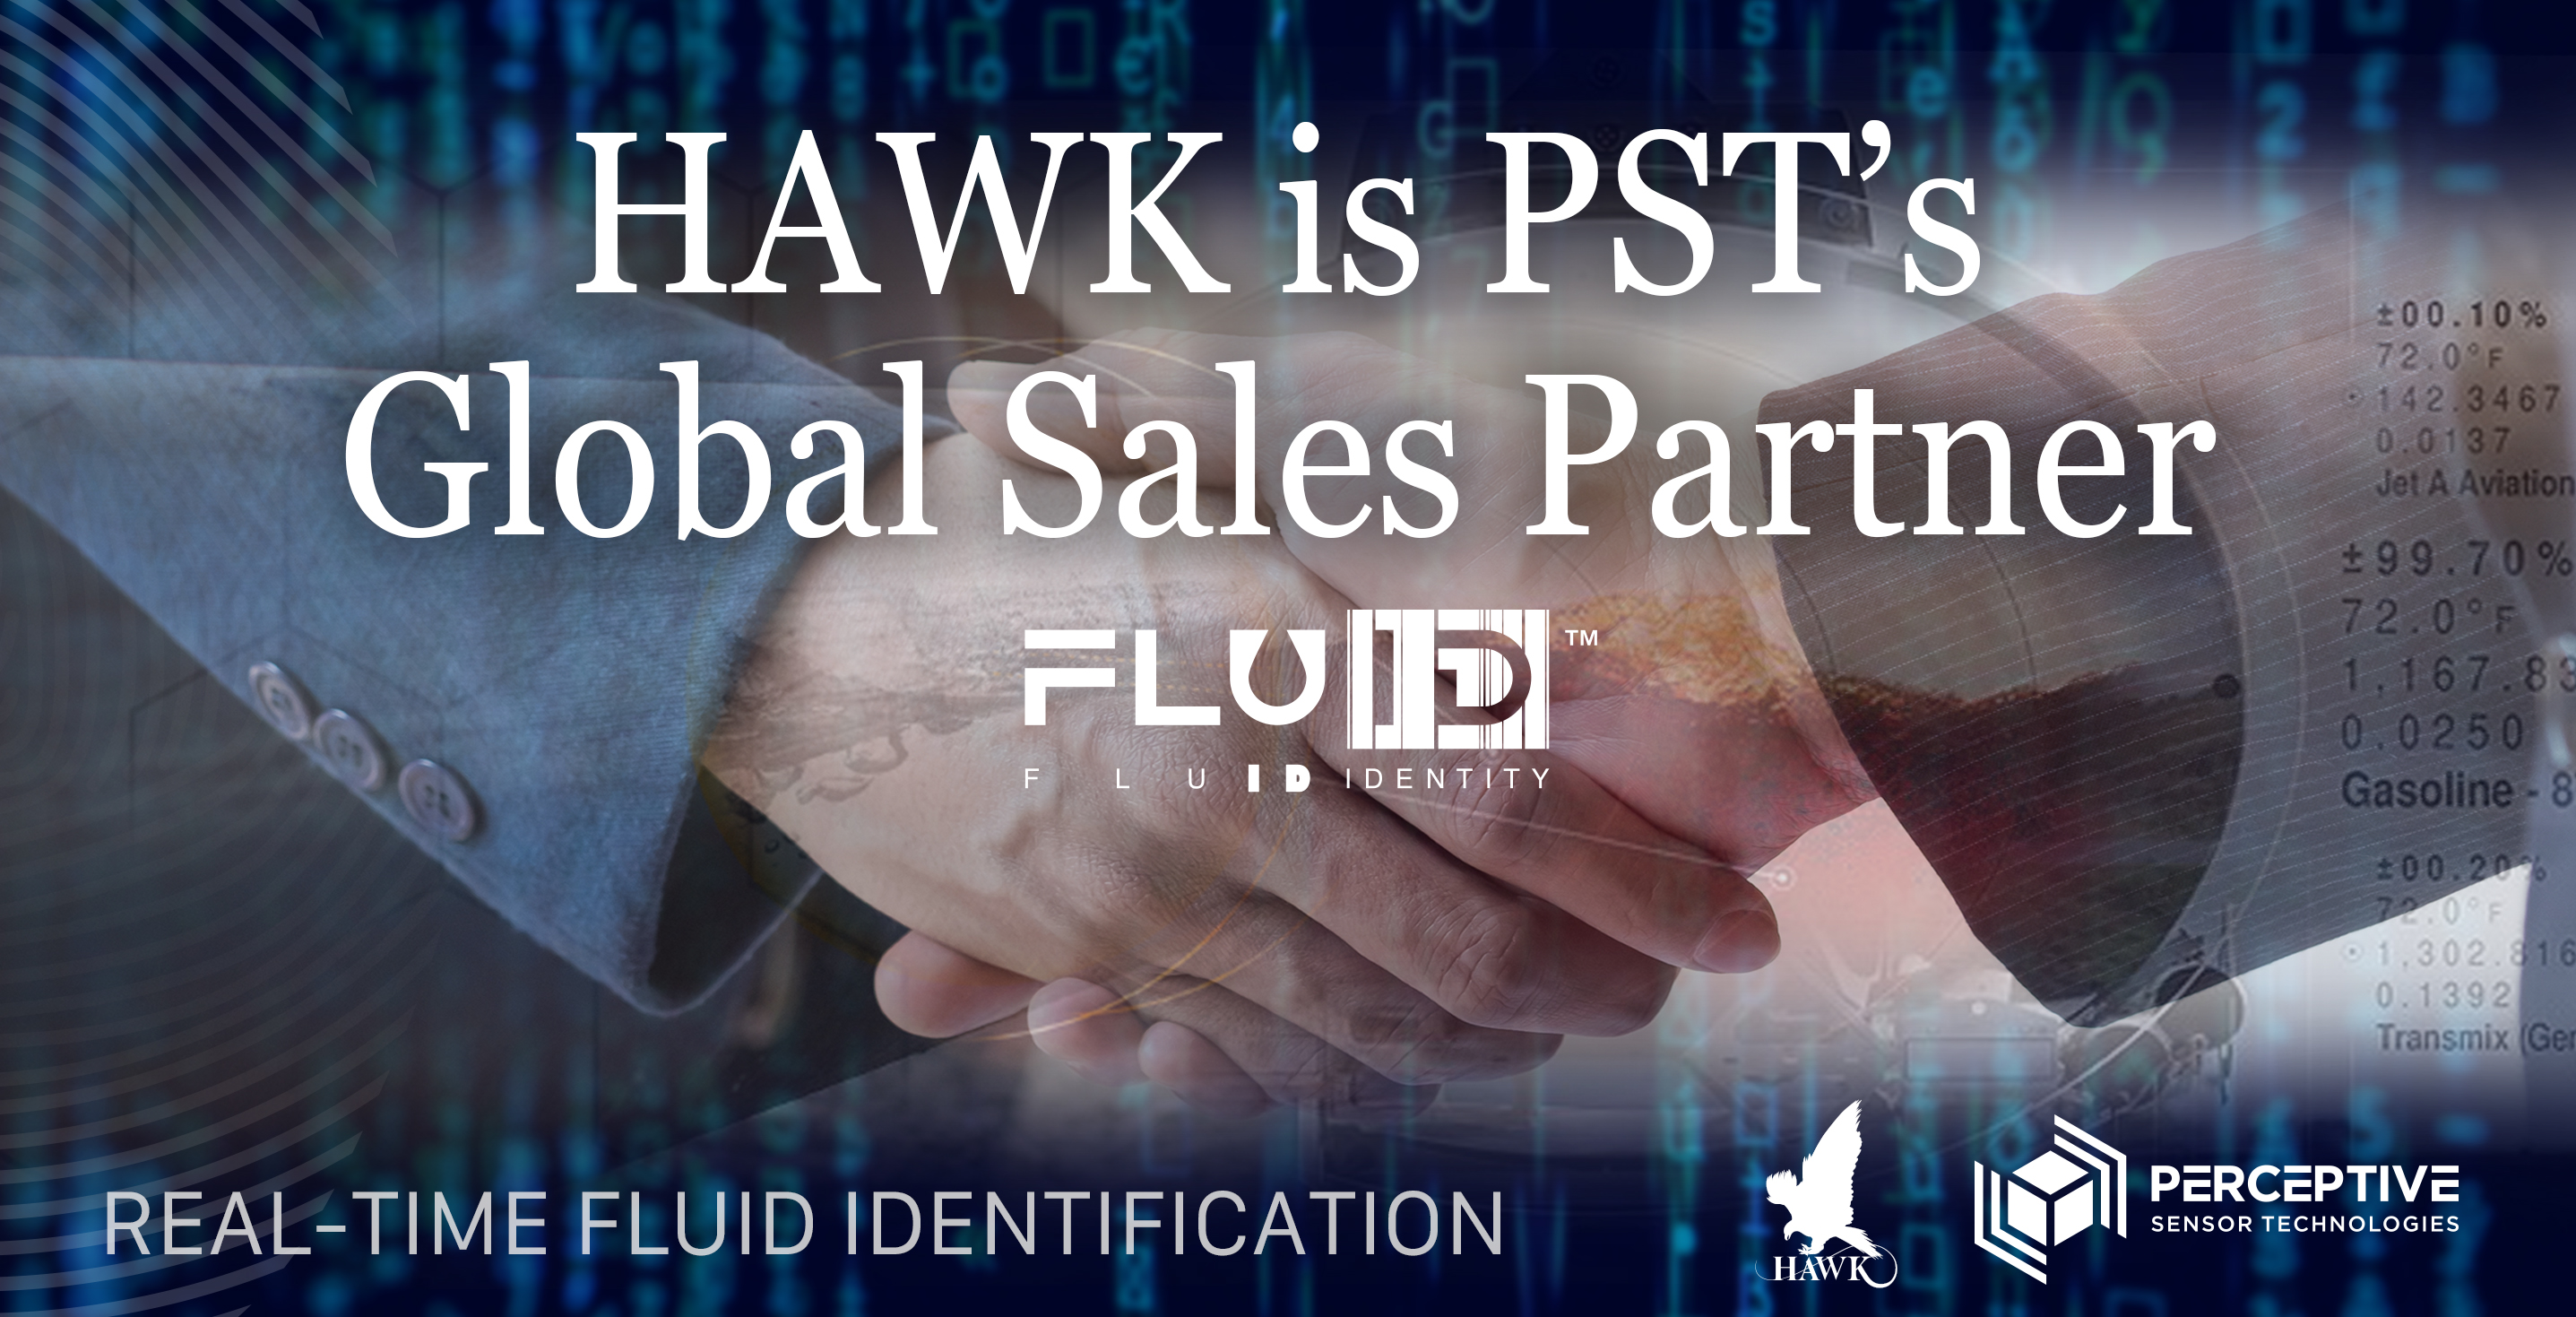 HAWK is Chosen as PST's Global Sales Partner